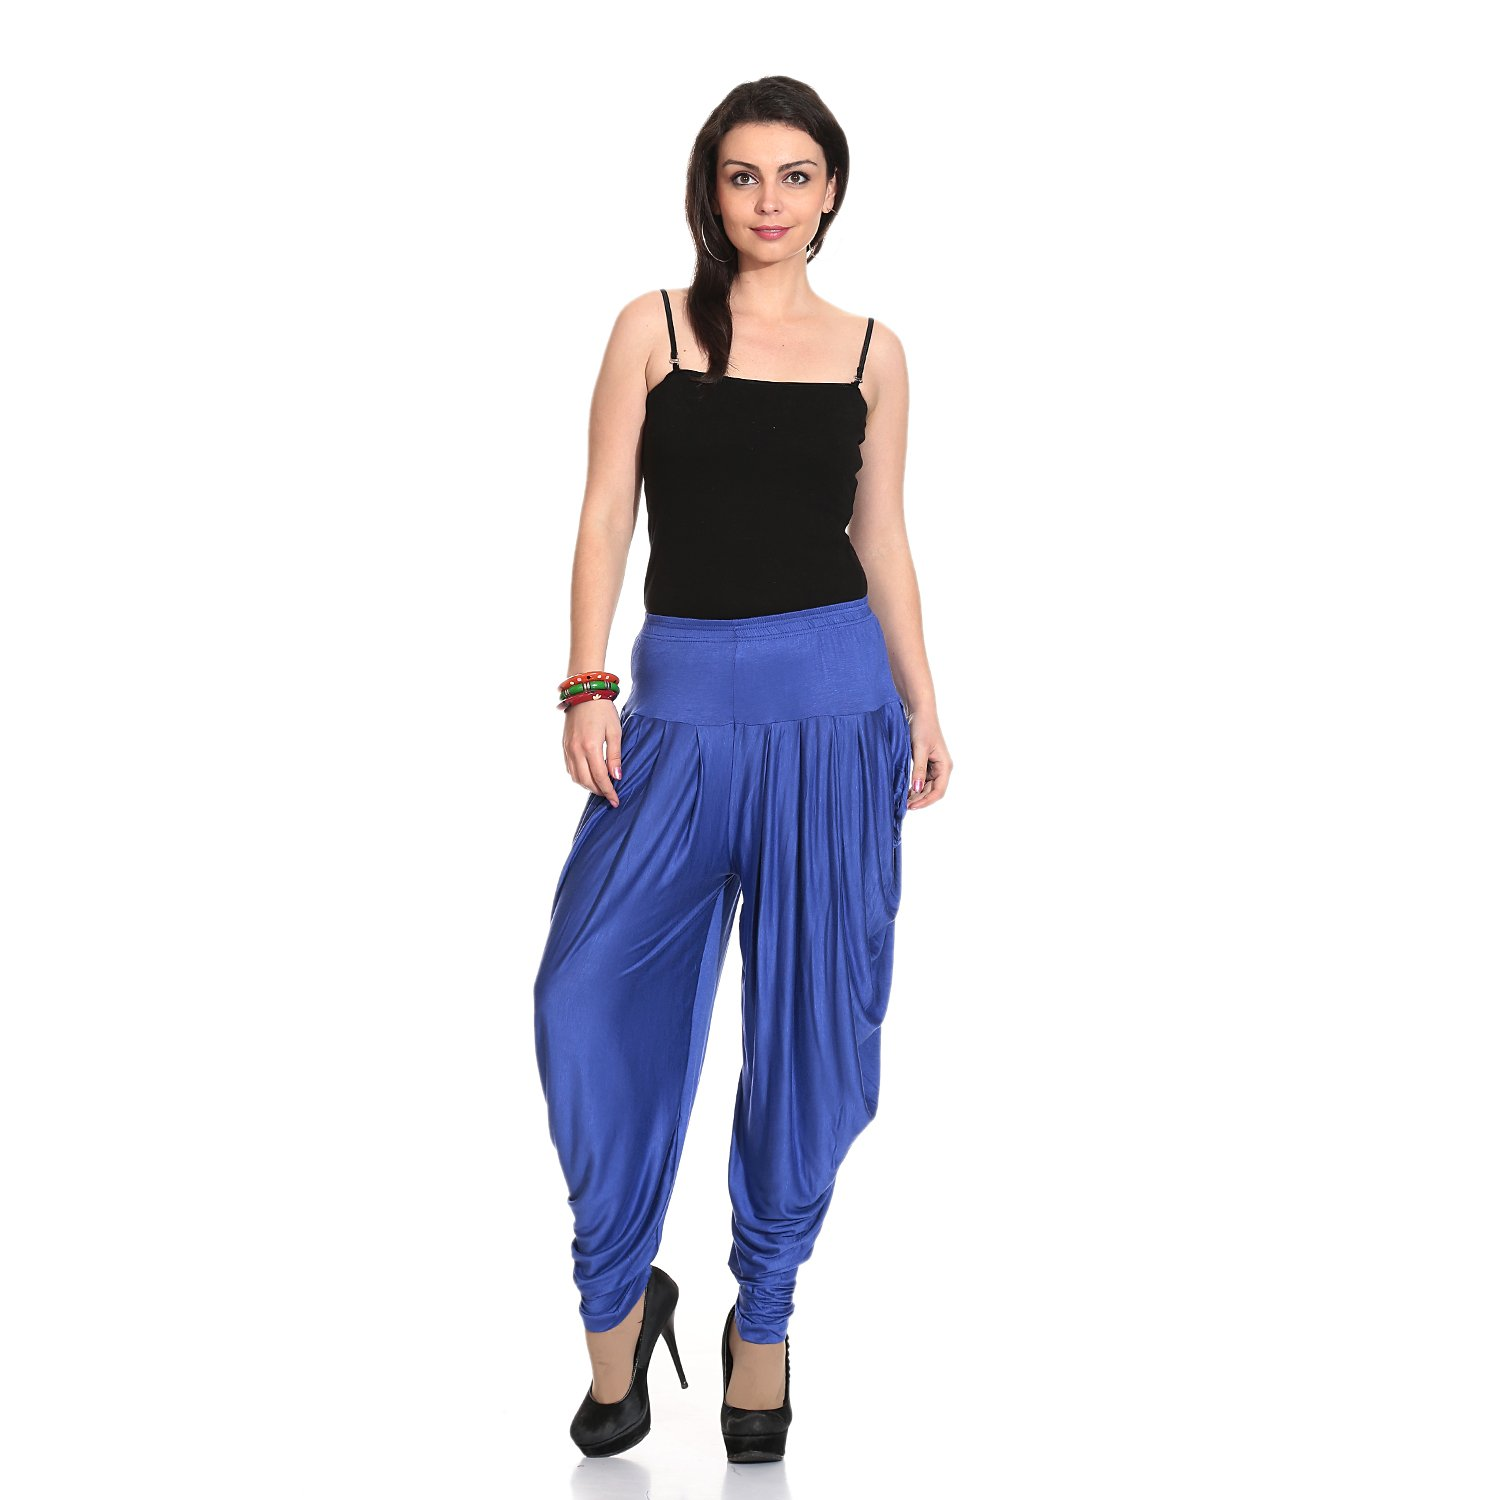 Legis Blue Relaxed Comfortable Cotton Blend Dhoti Pants Yoga Fitness Active wear Women Dance - Free Size (Blue)